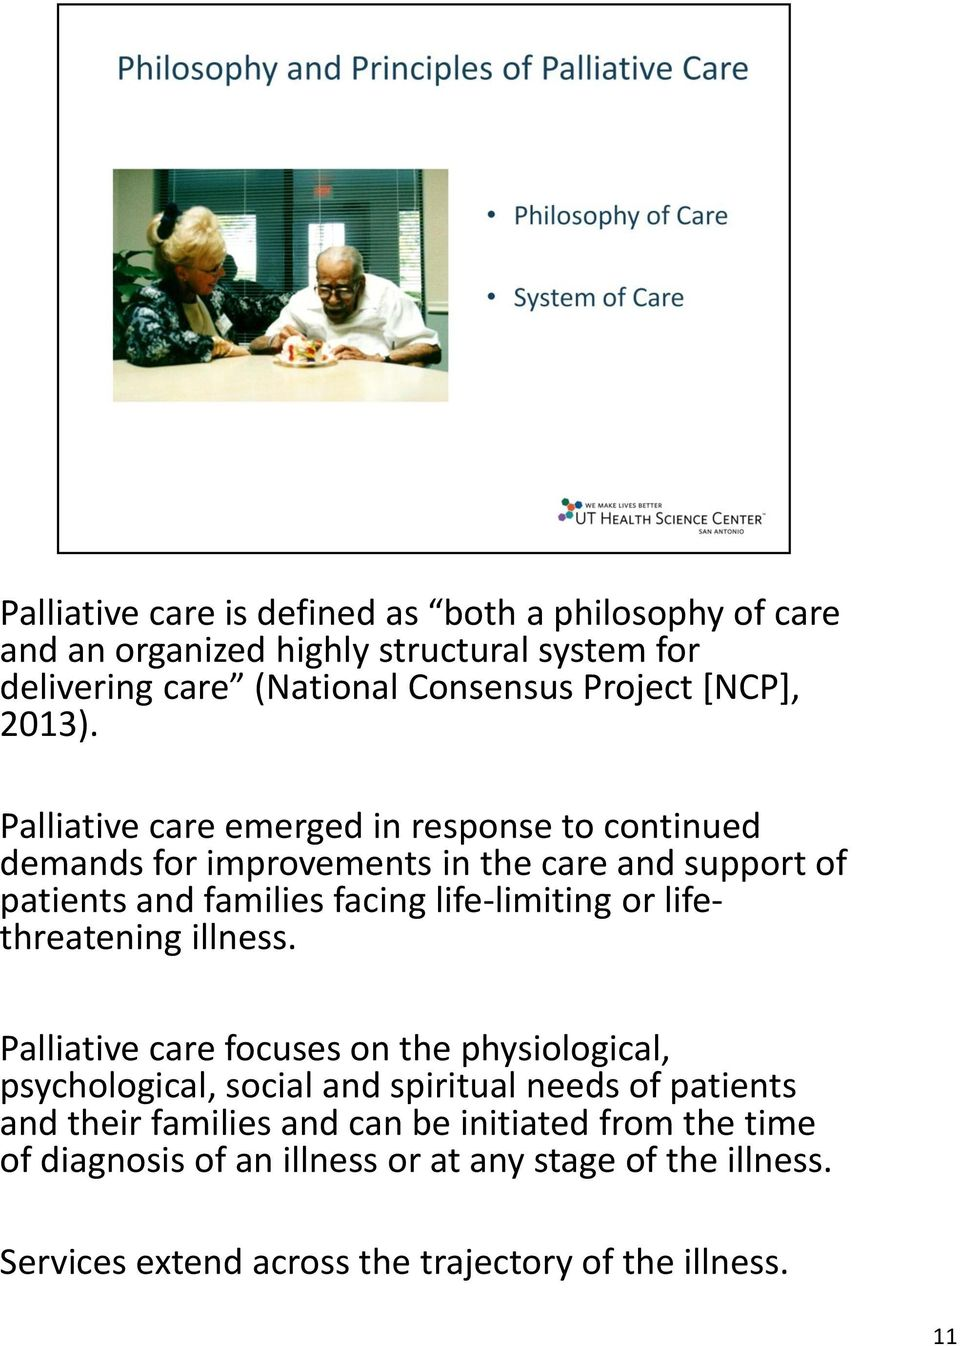 Palliative care emerged in response to continued demands for improvements in the care and support of patients and families facing life-limiting or